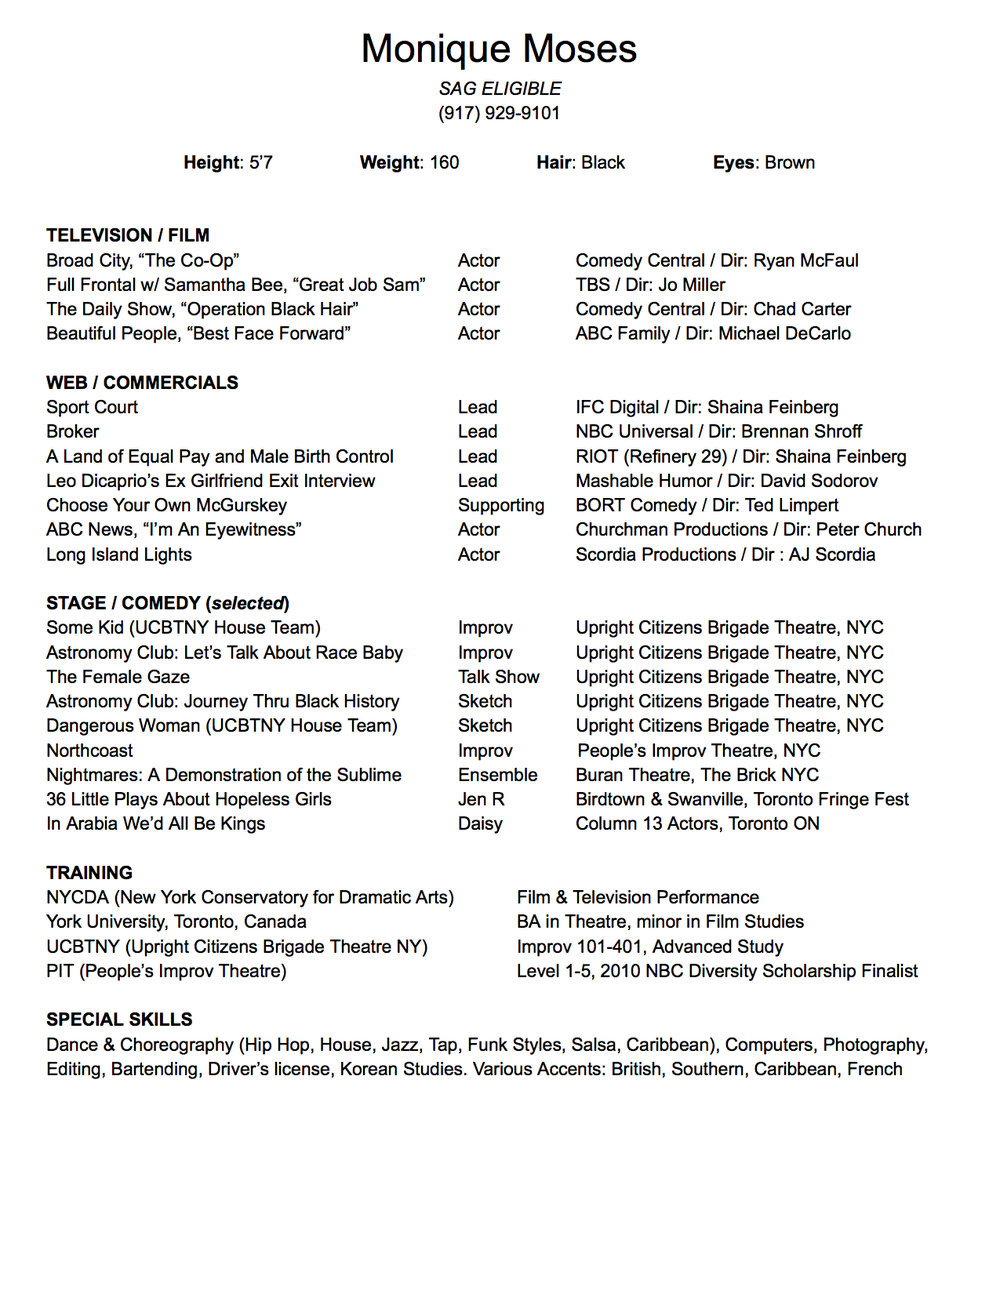 Monique Moses Resume | click to enlarge |  click to download